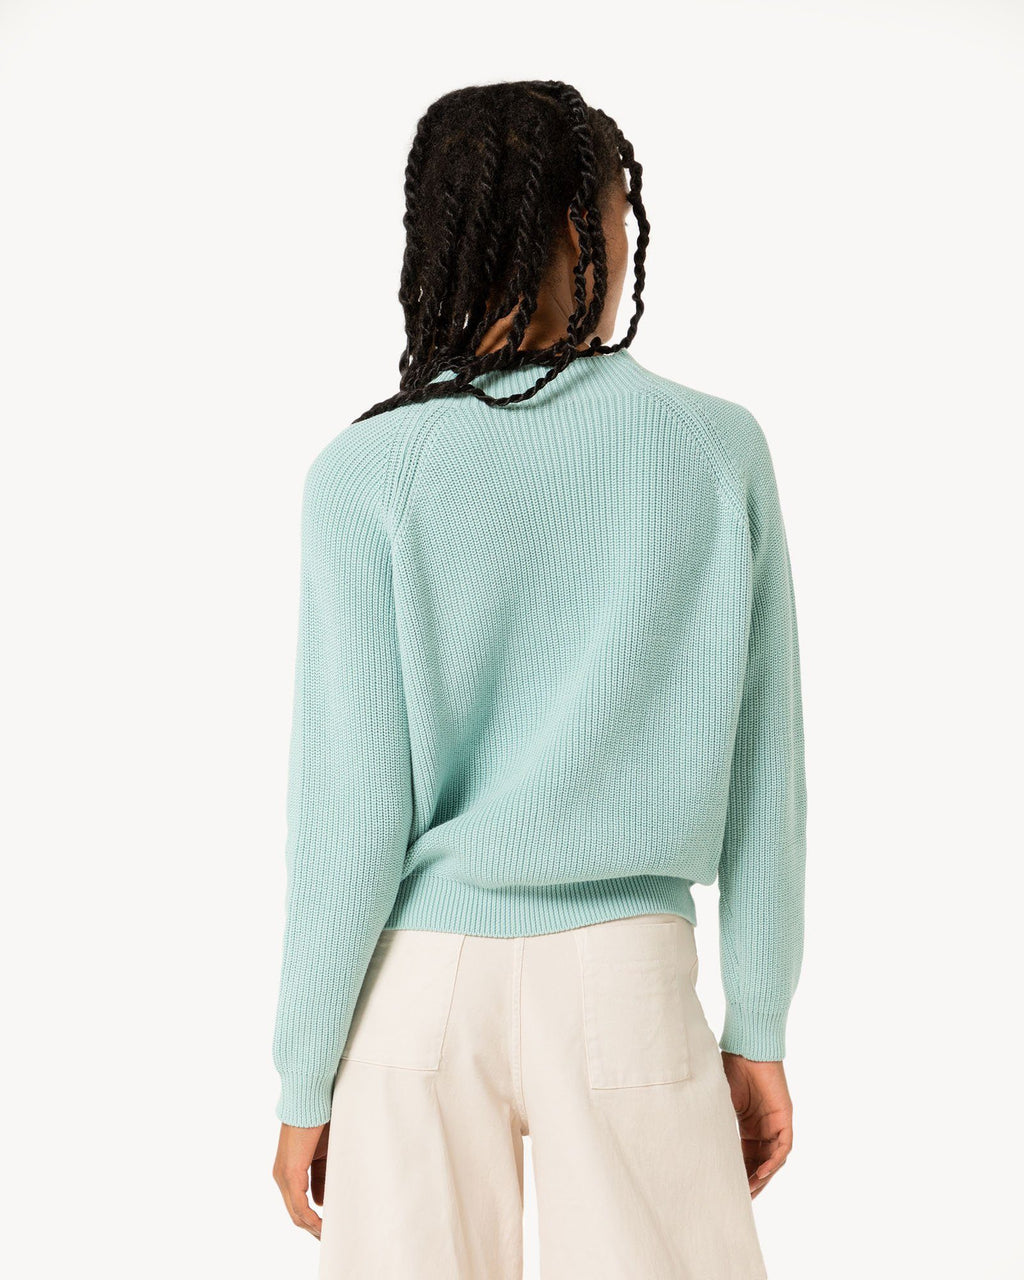 variant_1 | EN Knitted Women Sweater Turquise Turquoise polo neck | DE Damen Strickpullover Türkis